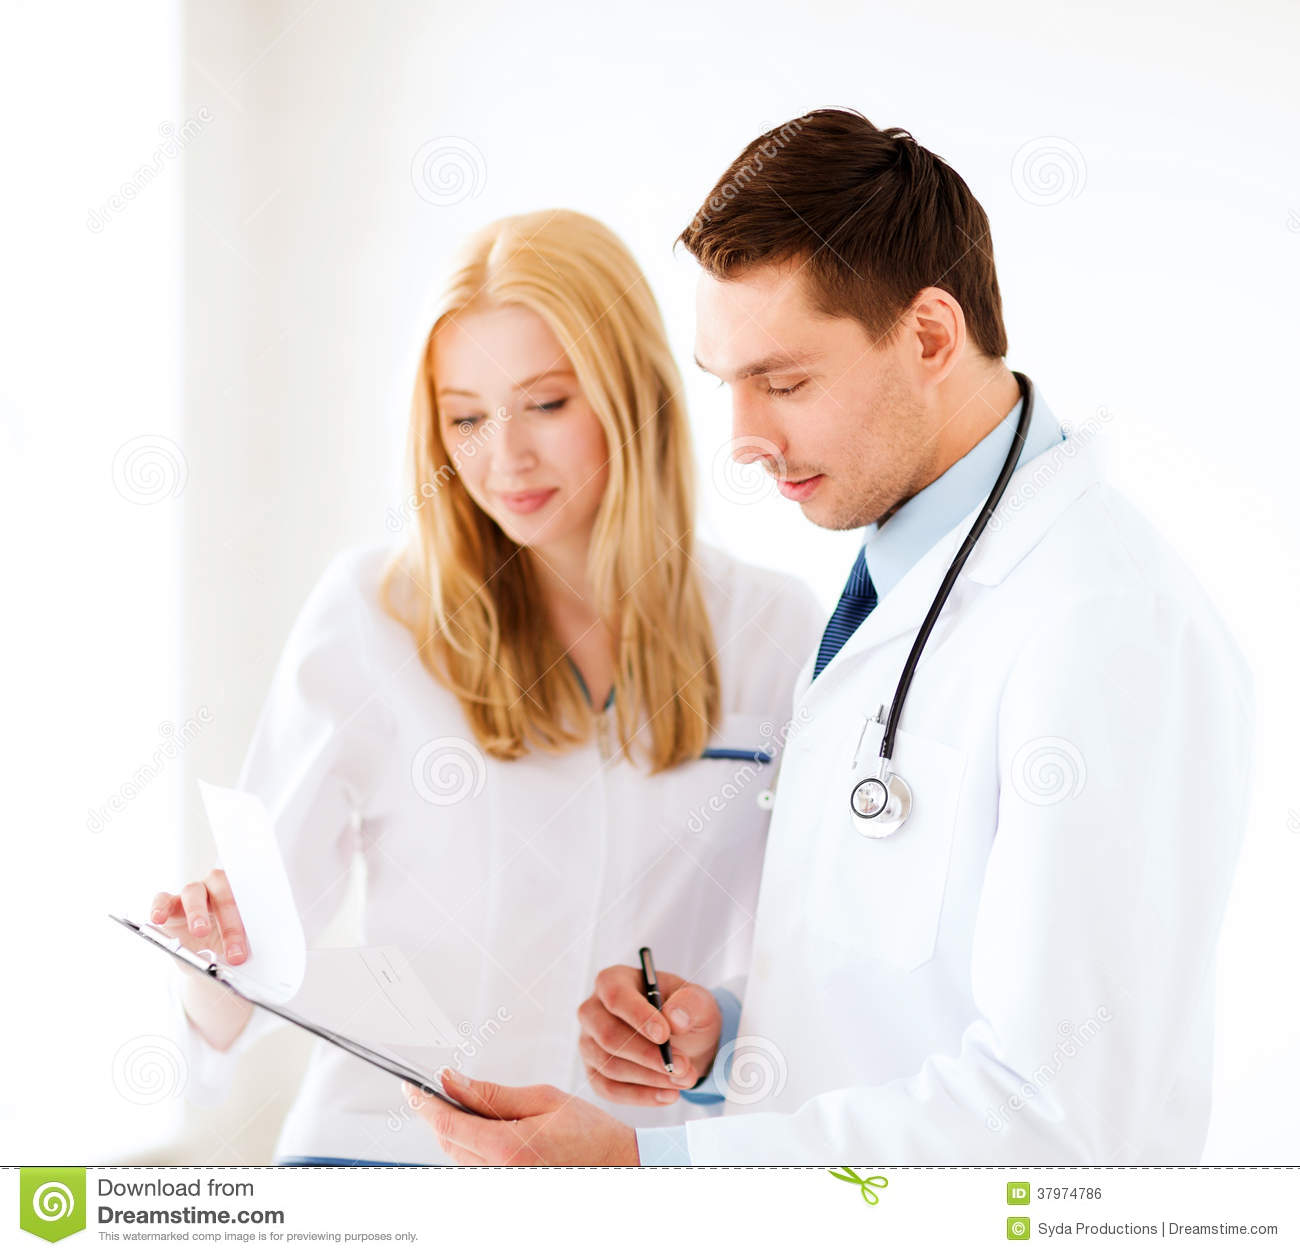 a description of pediatricians as physicians who specializes in the care of young people Internal medicine physicians are specialists who apply scientific knowledge and clinical expertise to the diagnosis, treatment, and compassionate care of adults across the spectrum from health to complex illness.